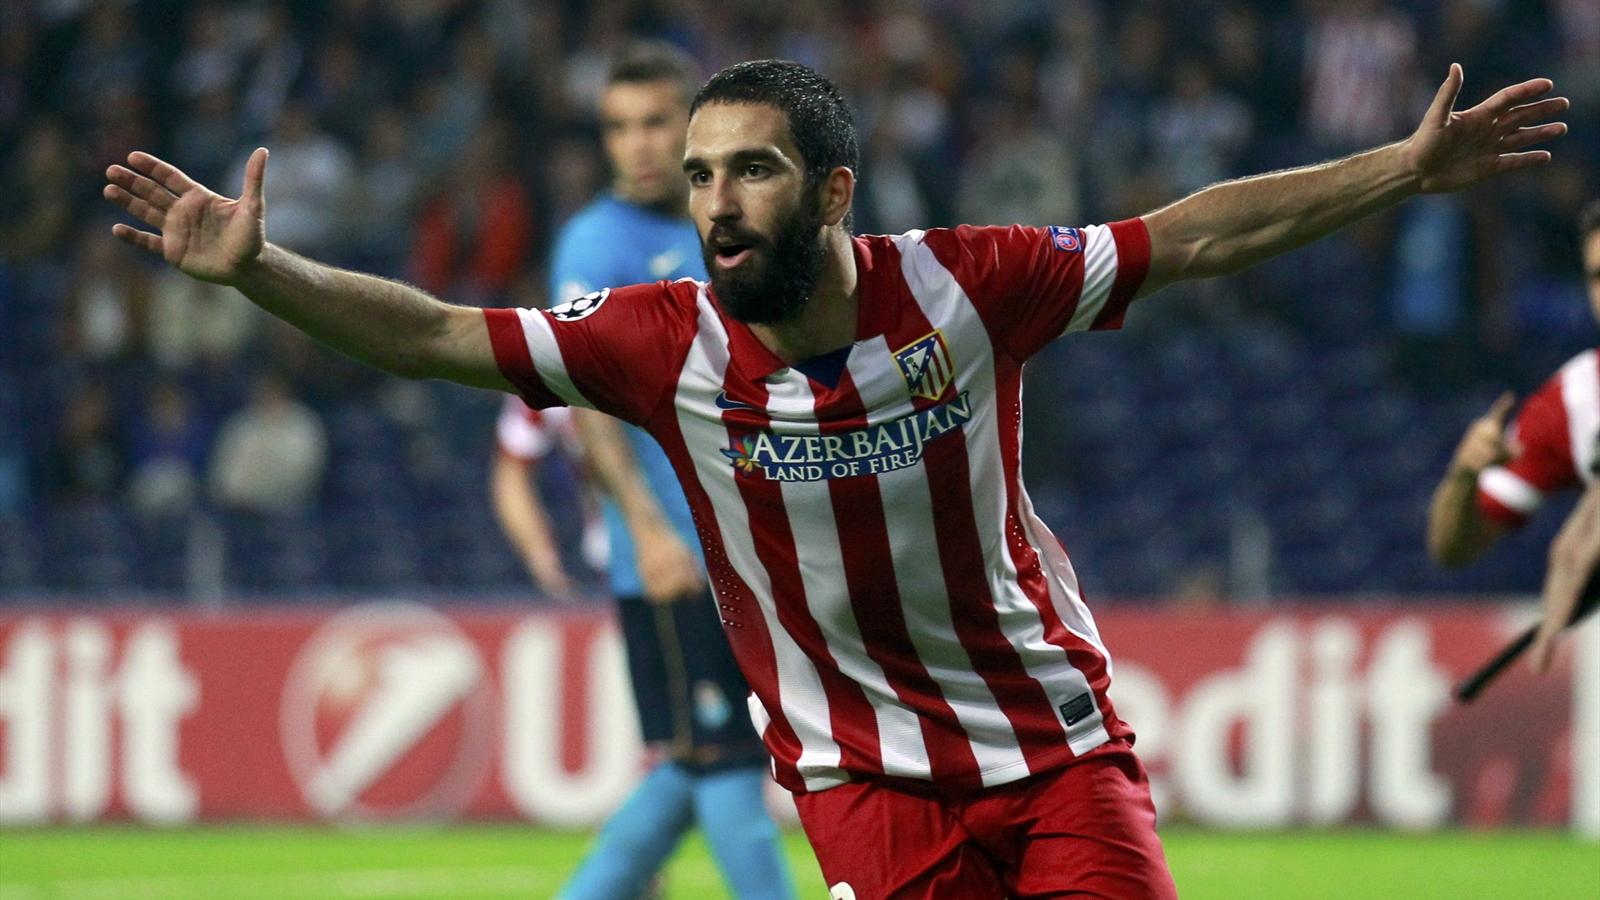 Atletico Madrid midfielder Arda Turan will leave at the end of the